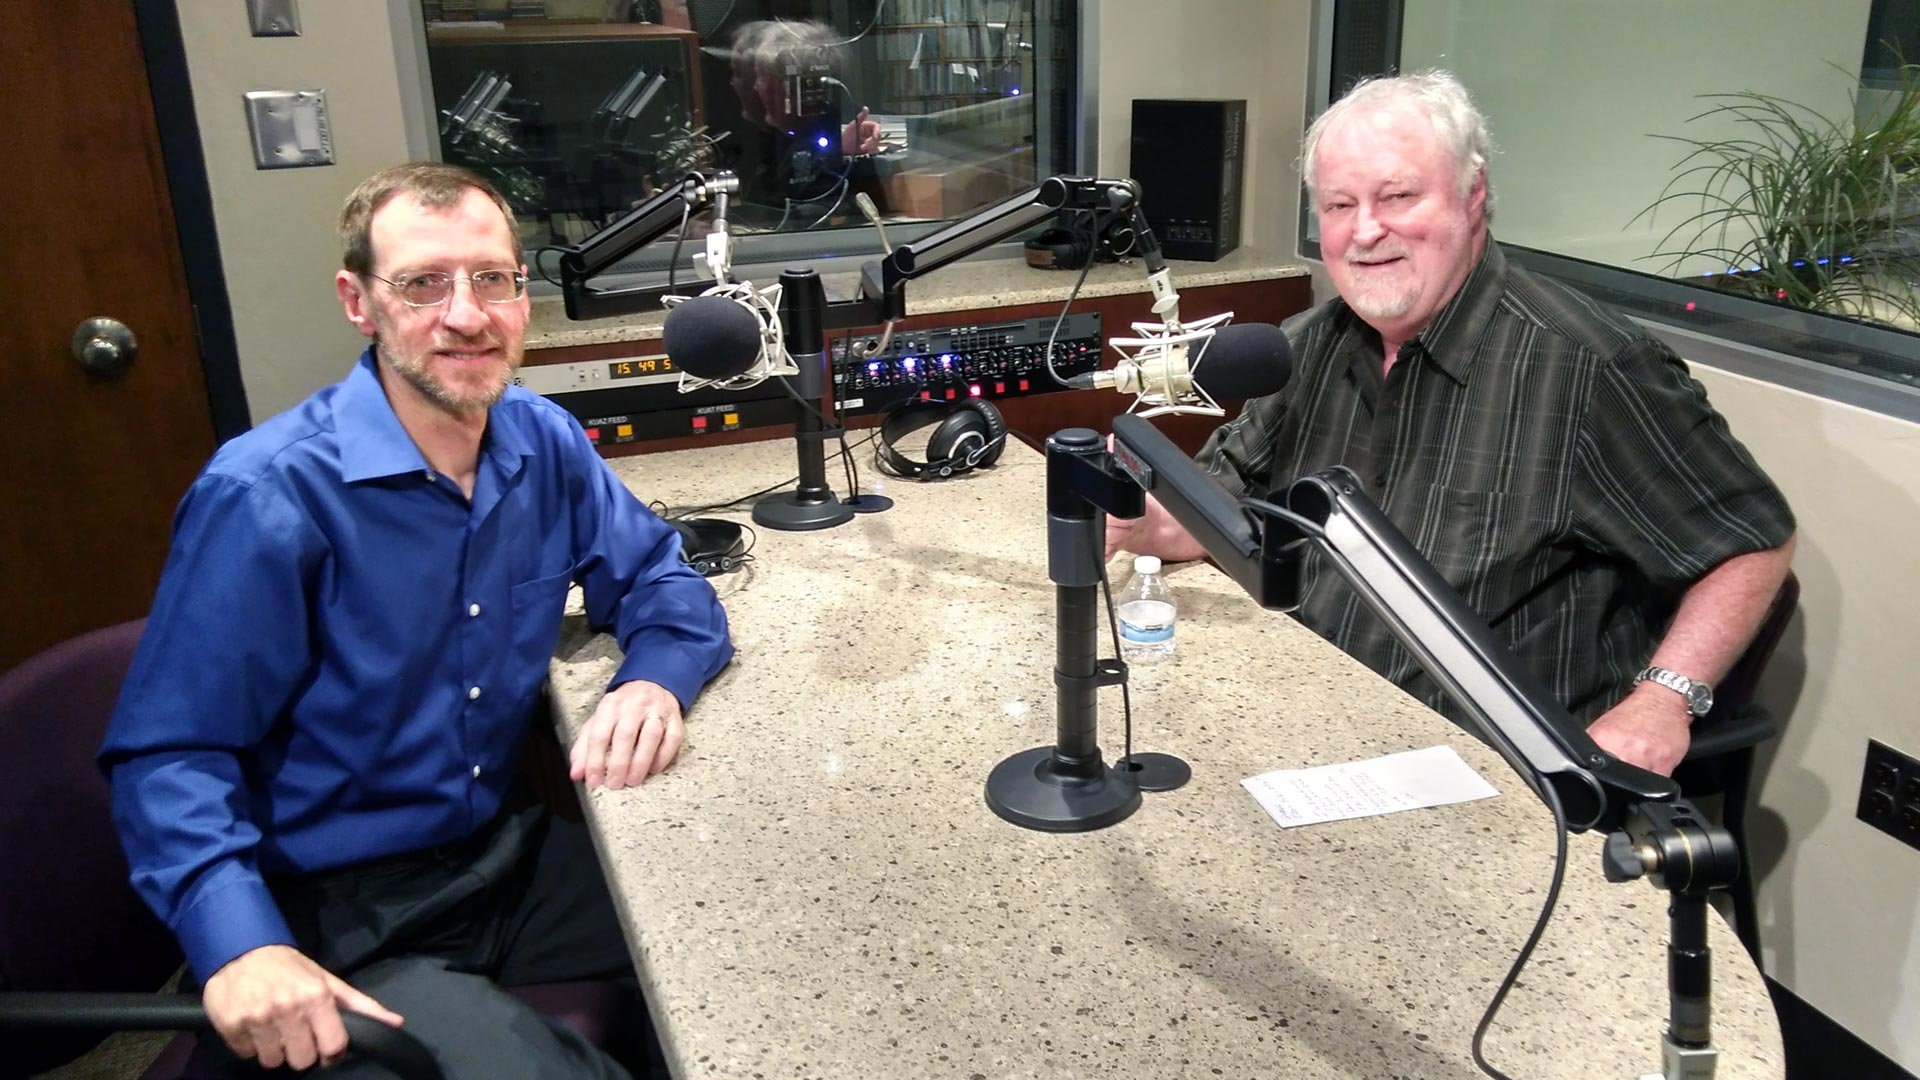 """Exploring Music"" host, Bill McLaughlin, visits with Andy Bade at the AZPM radio studios."